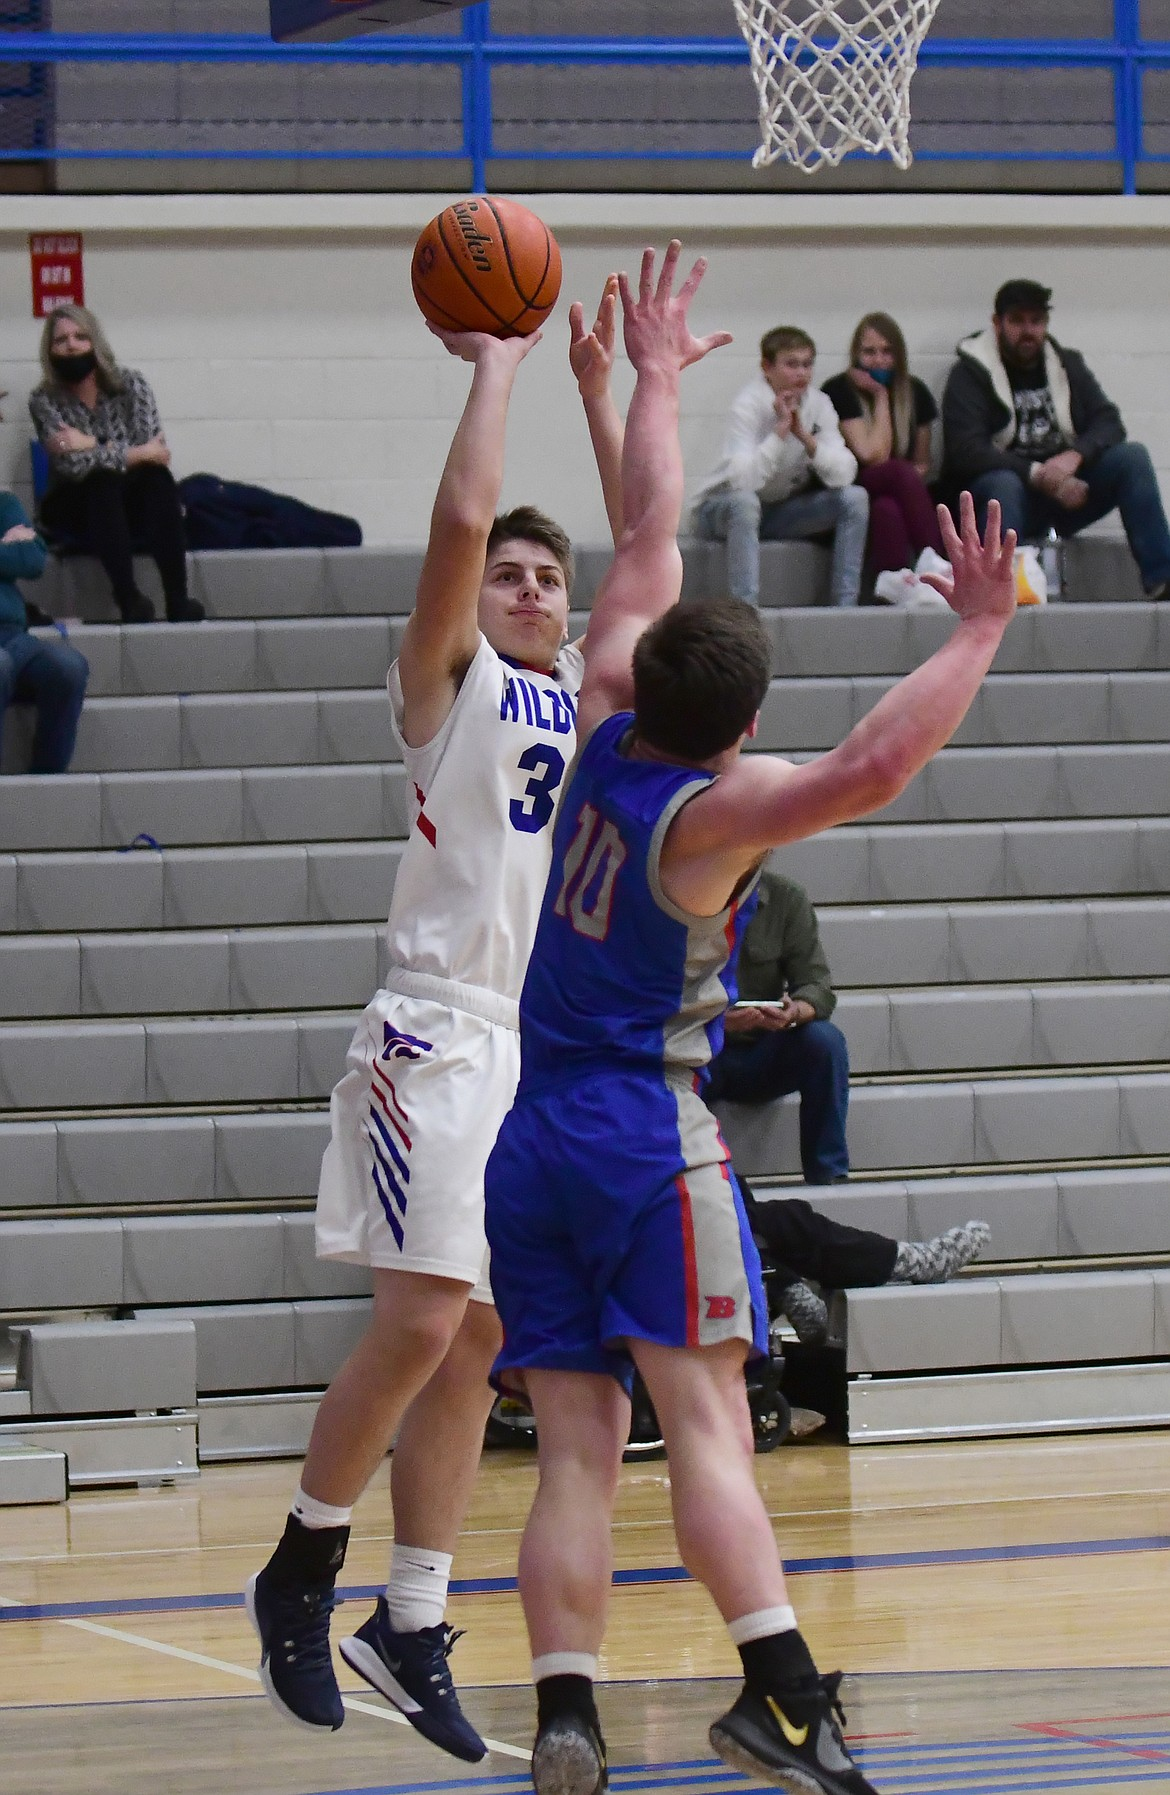 Cody Schweikert takes a shot in last Tuesday's game against Bigfork. (Teresa Byrd/Hungry Horse News)